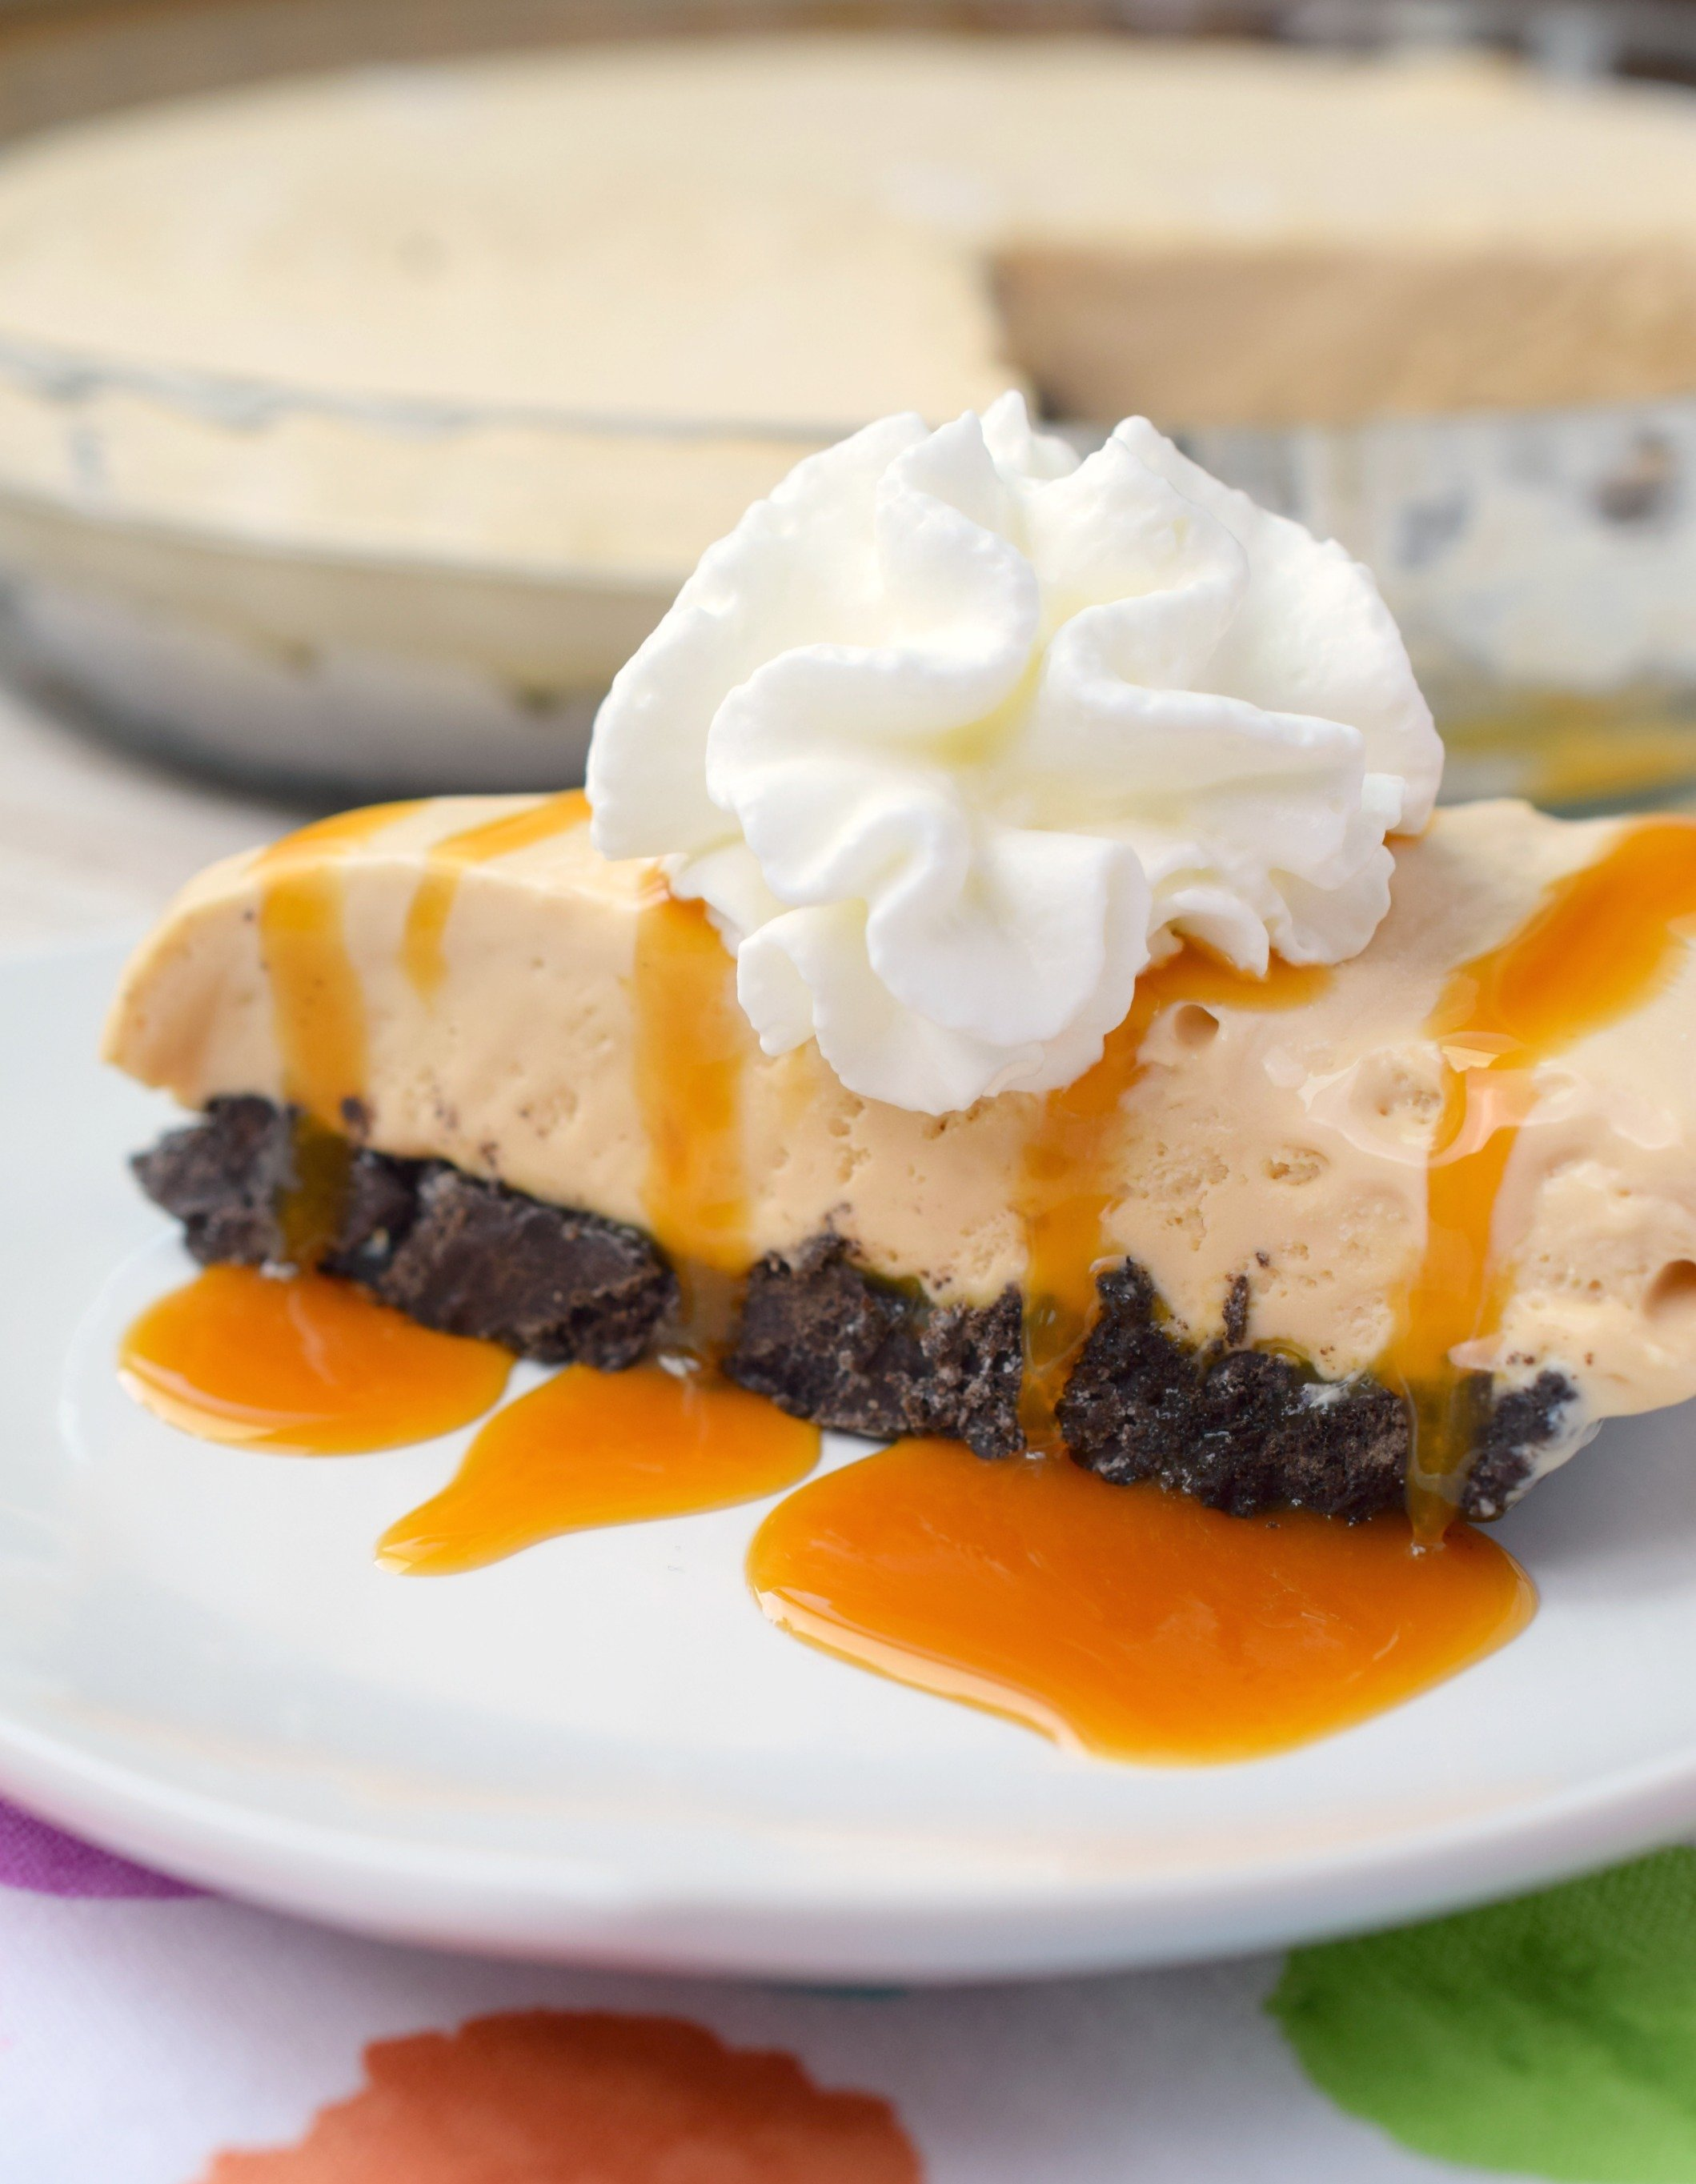 Boozy Dulce de Leche No-Bake Cheesecake combines amazing flavors in one easy to make dessert. Great for parties, you'll love this rich and decadent treat.